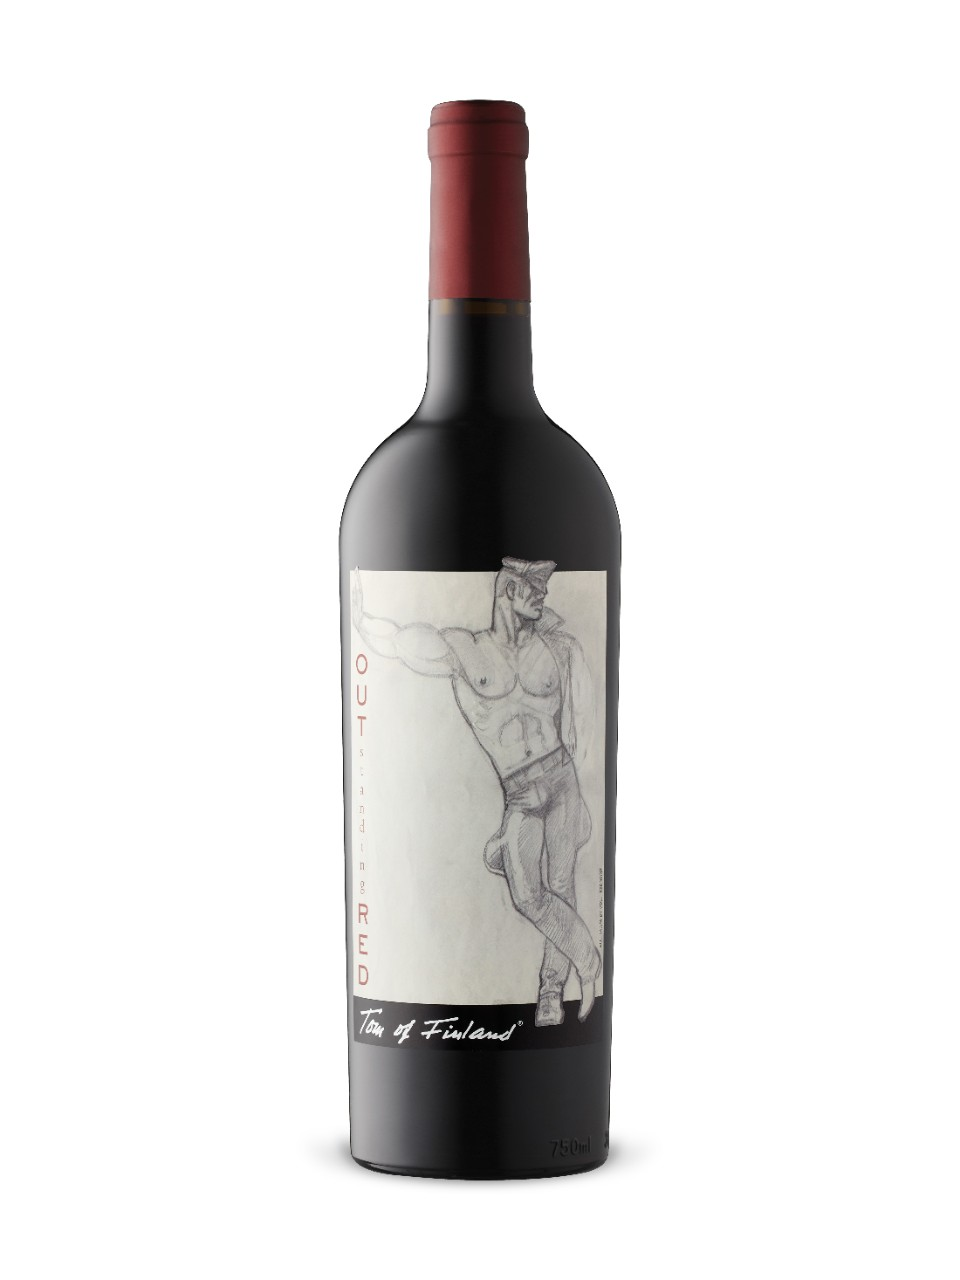 Outstanding Red Tom of Finland 2016 à partir de LCBO